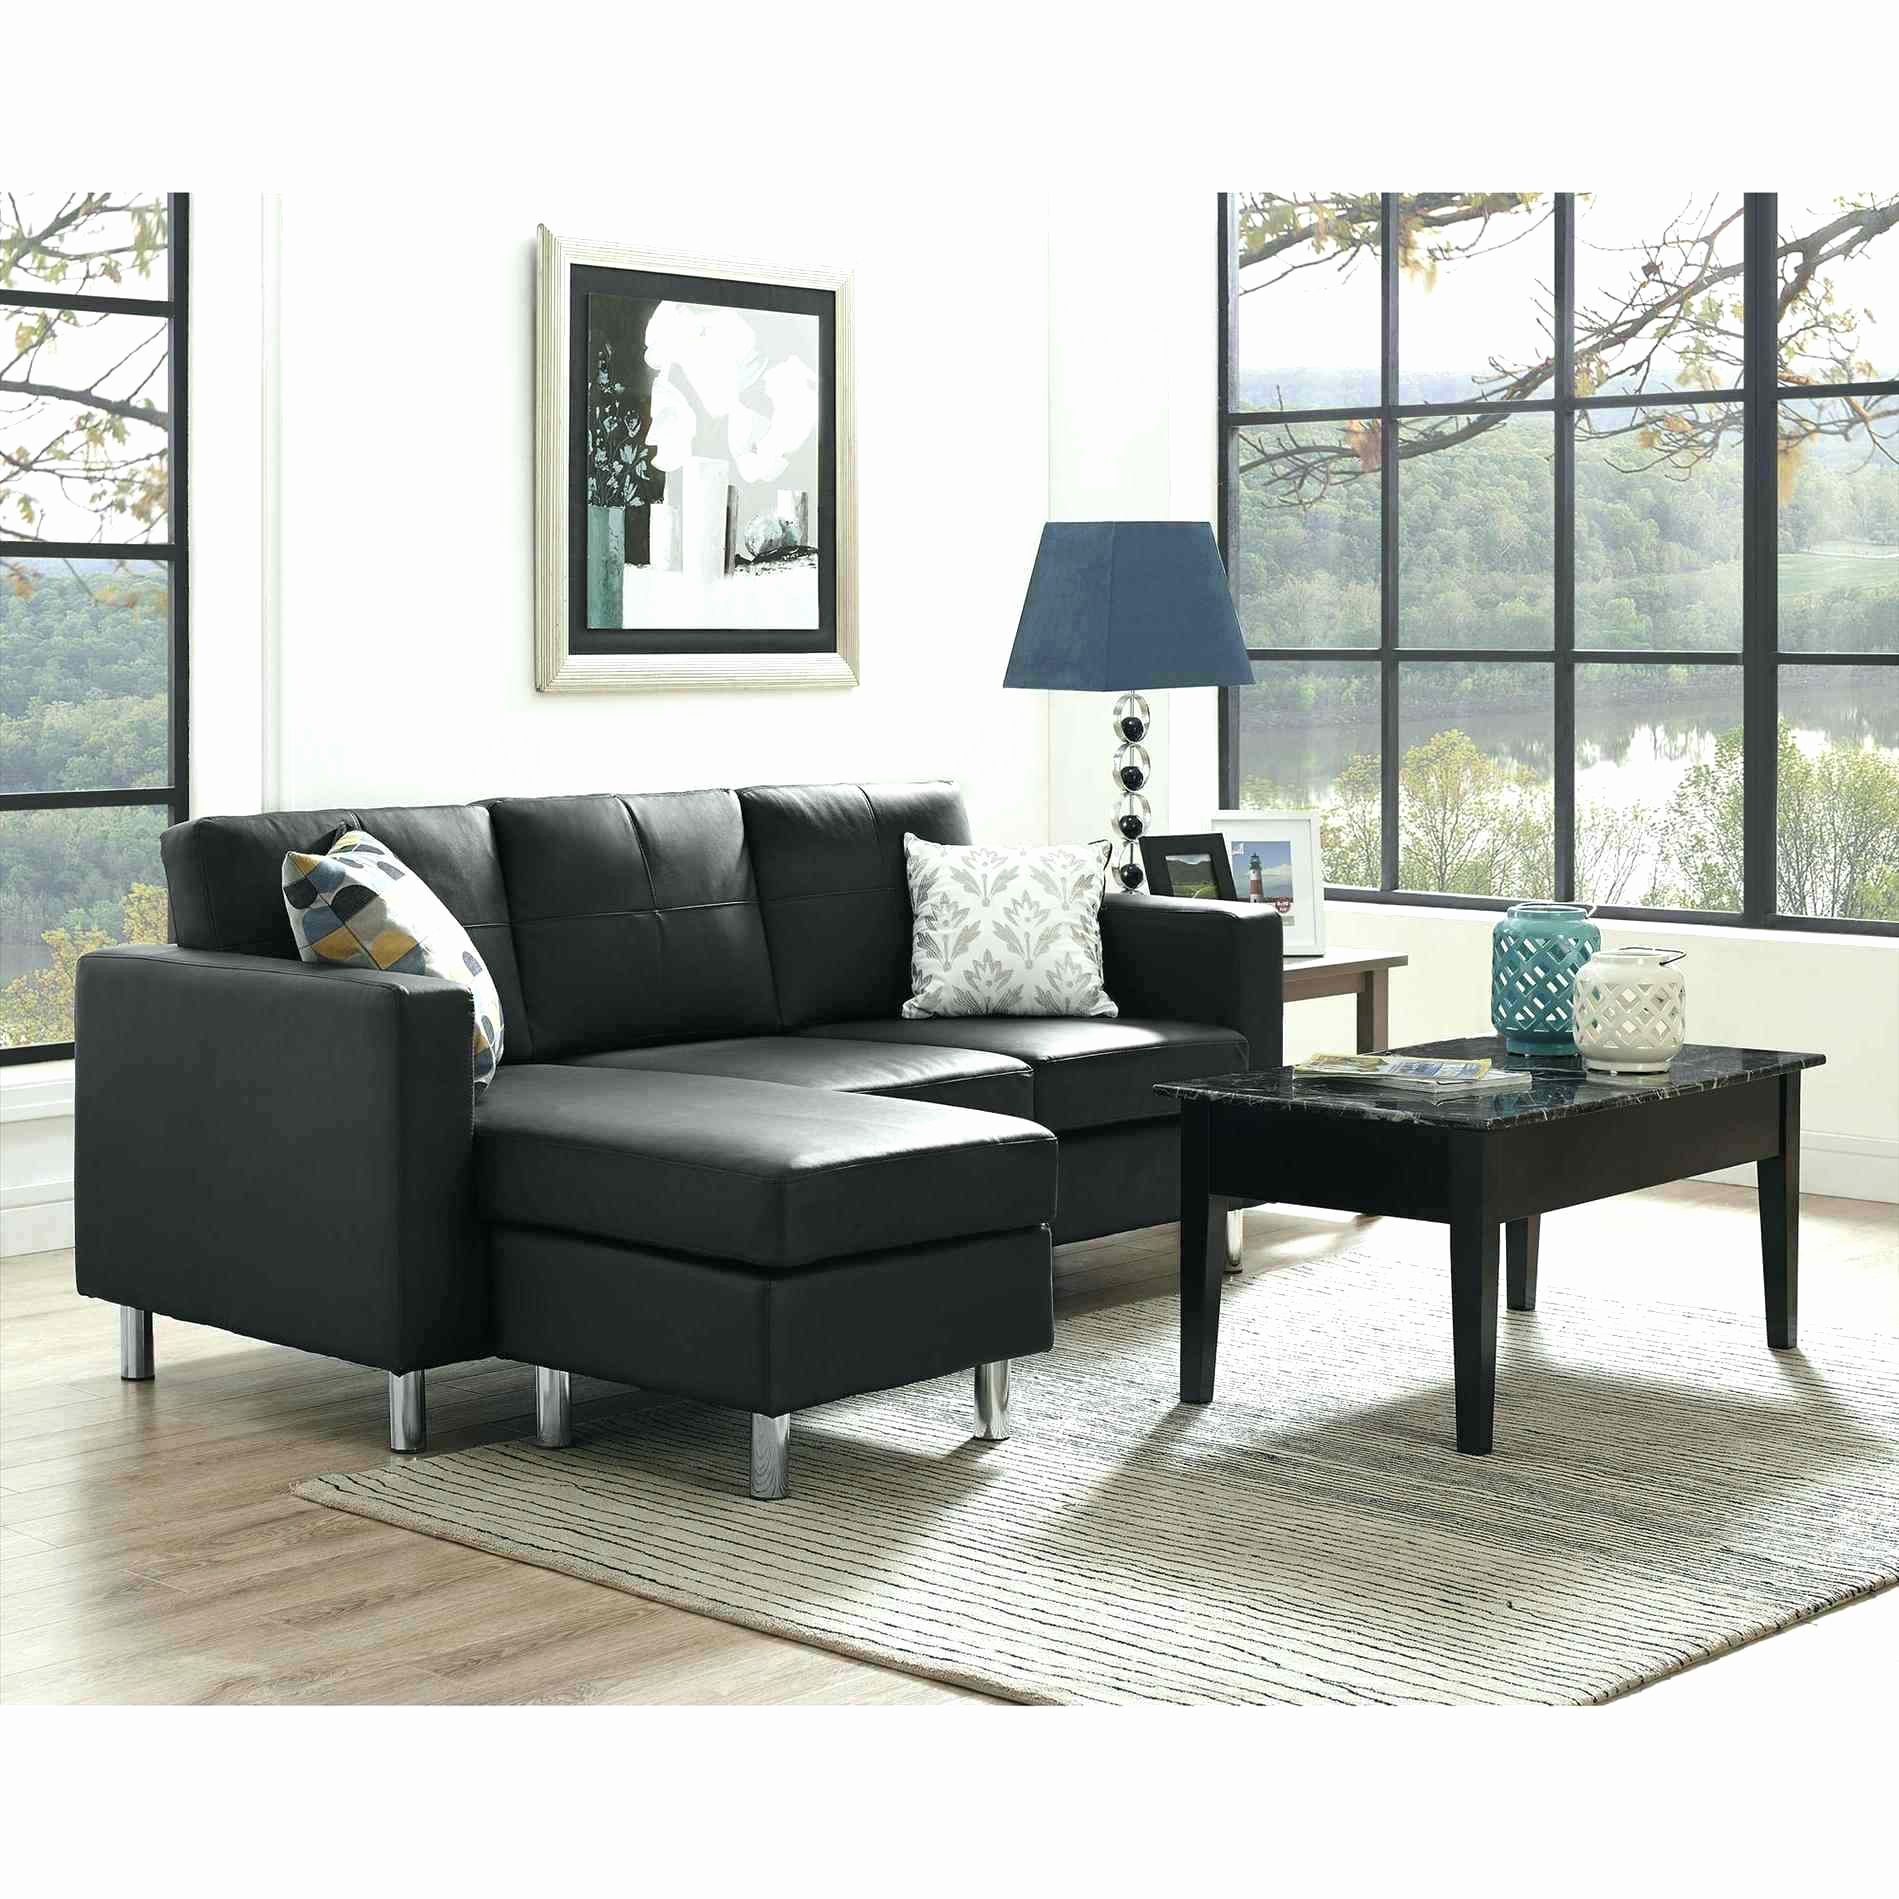 Best Awesome Black Sectional Sofas Photos Chaise Leather L 640 x 480